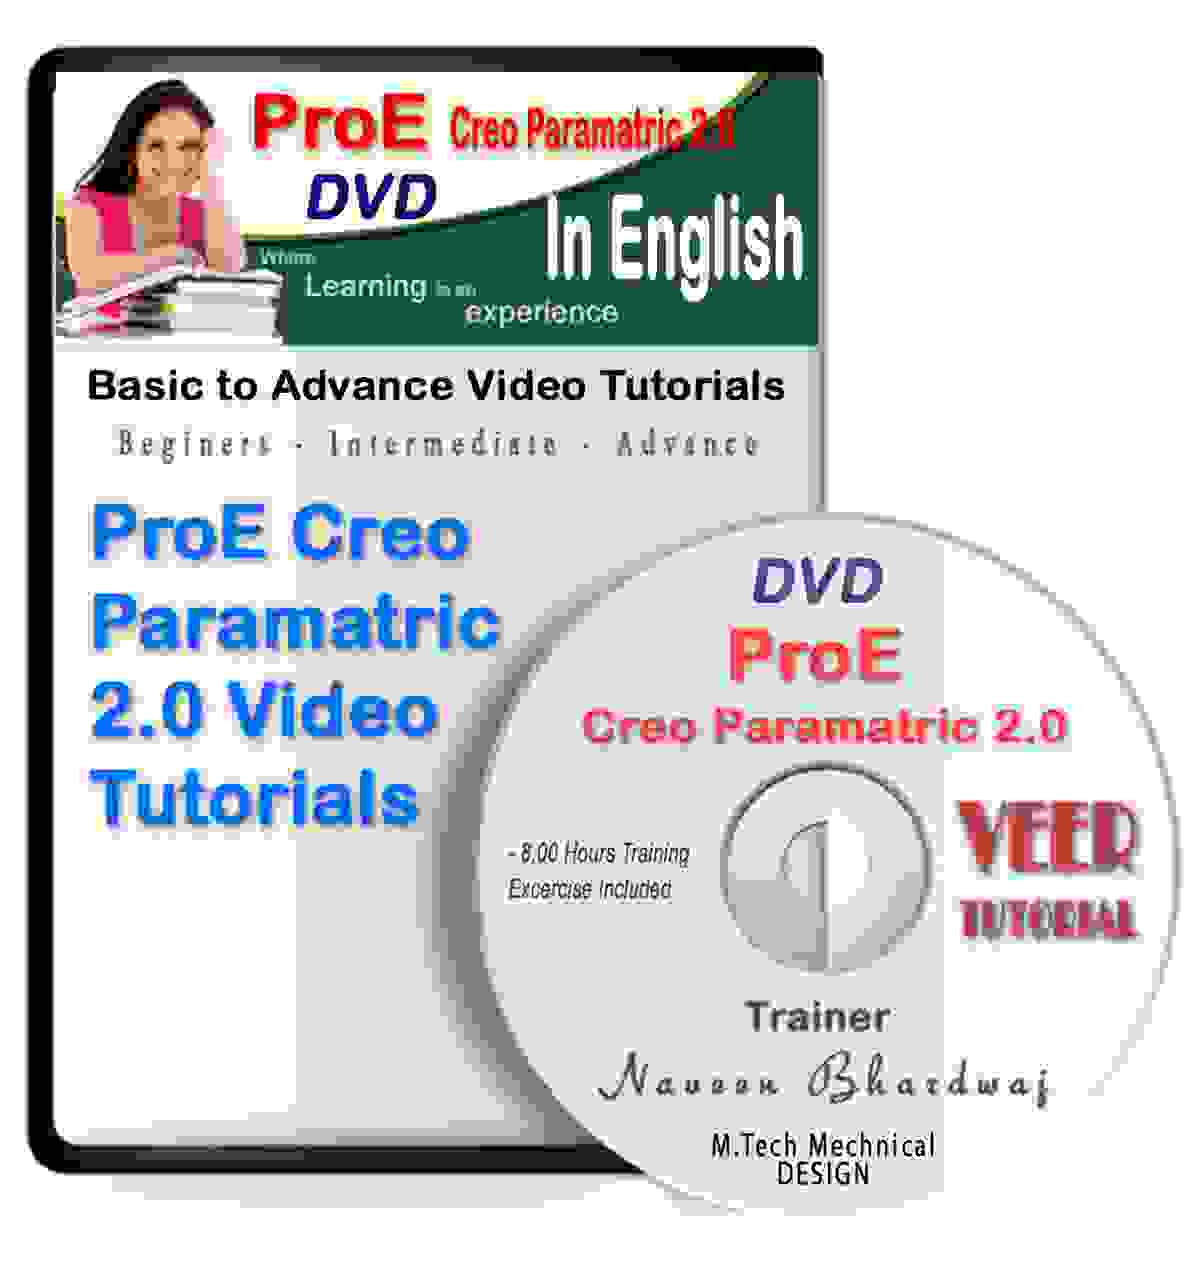 Pro Engineer Creo Tutorial DVD Latest Version Basic to Advance in English Training Video